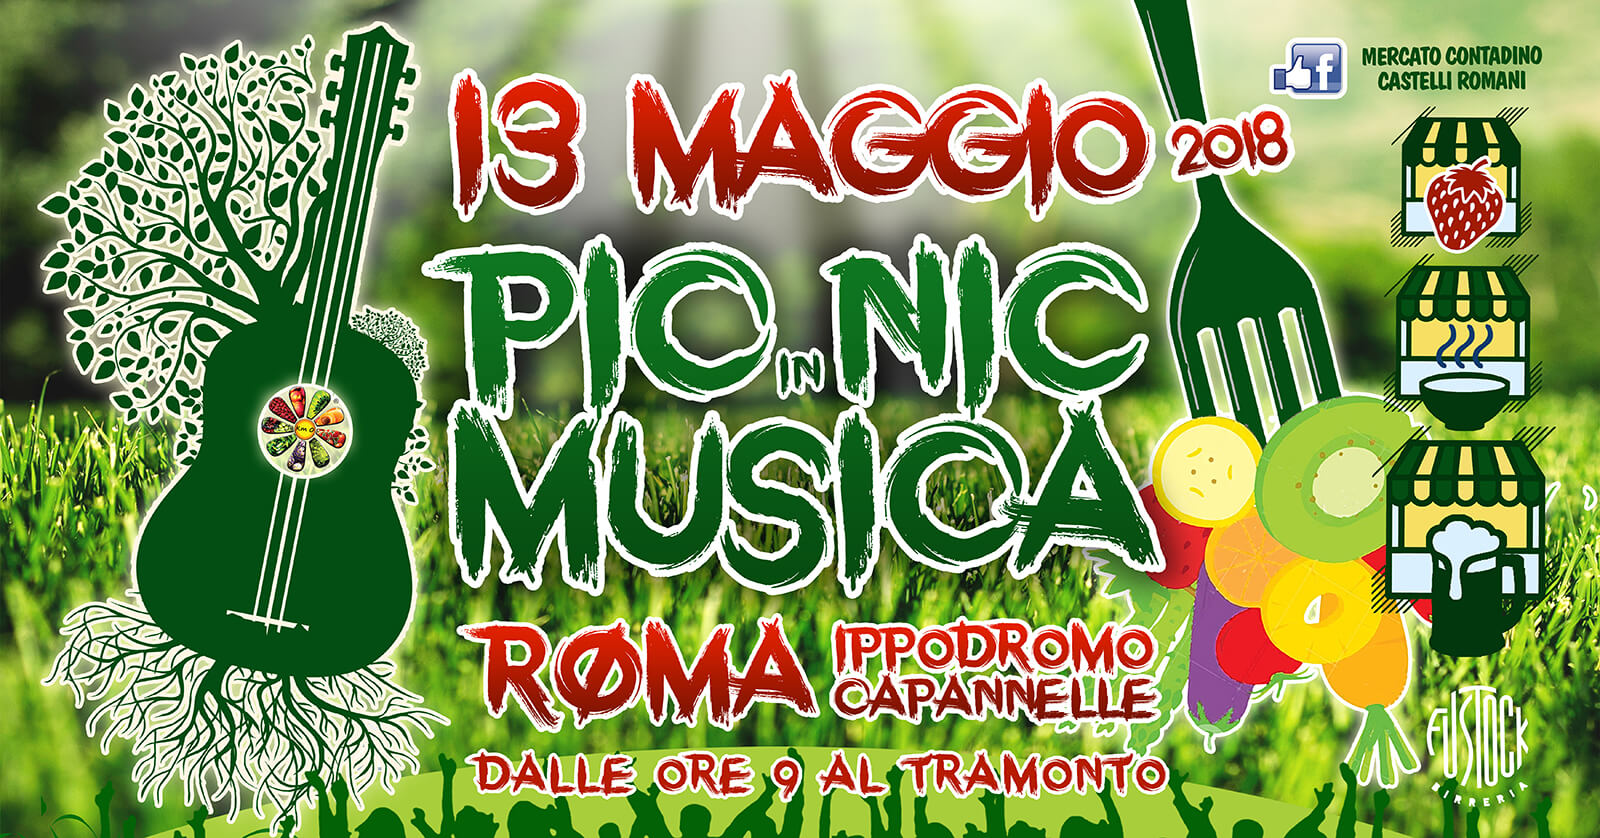 PIC_NIC_IN_MUSICA